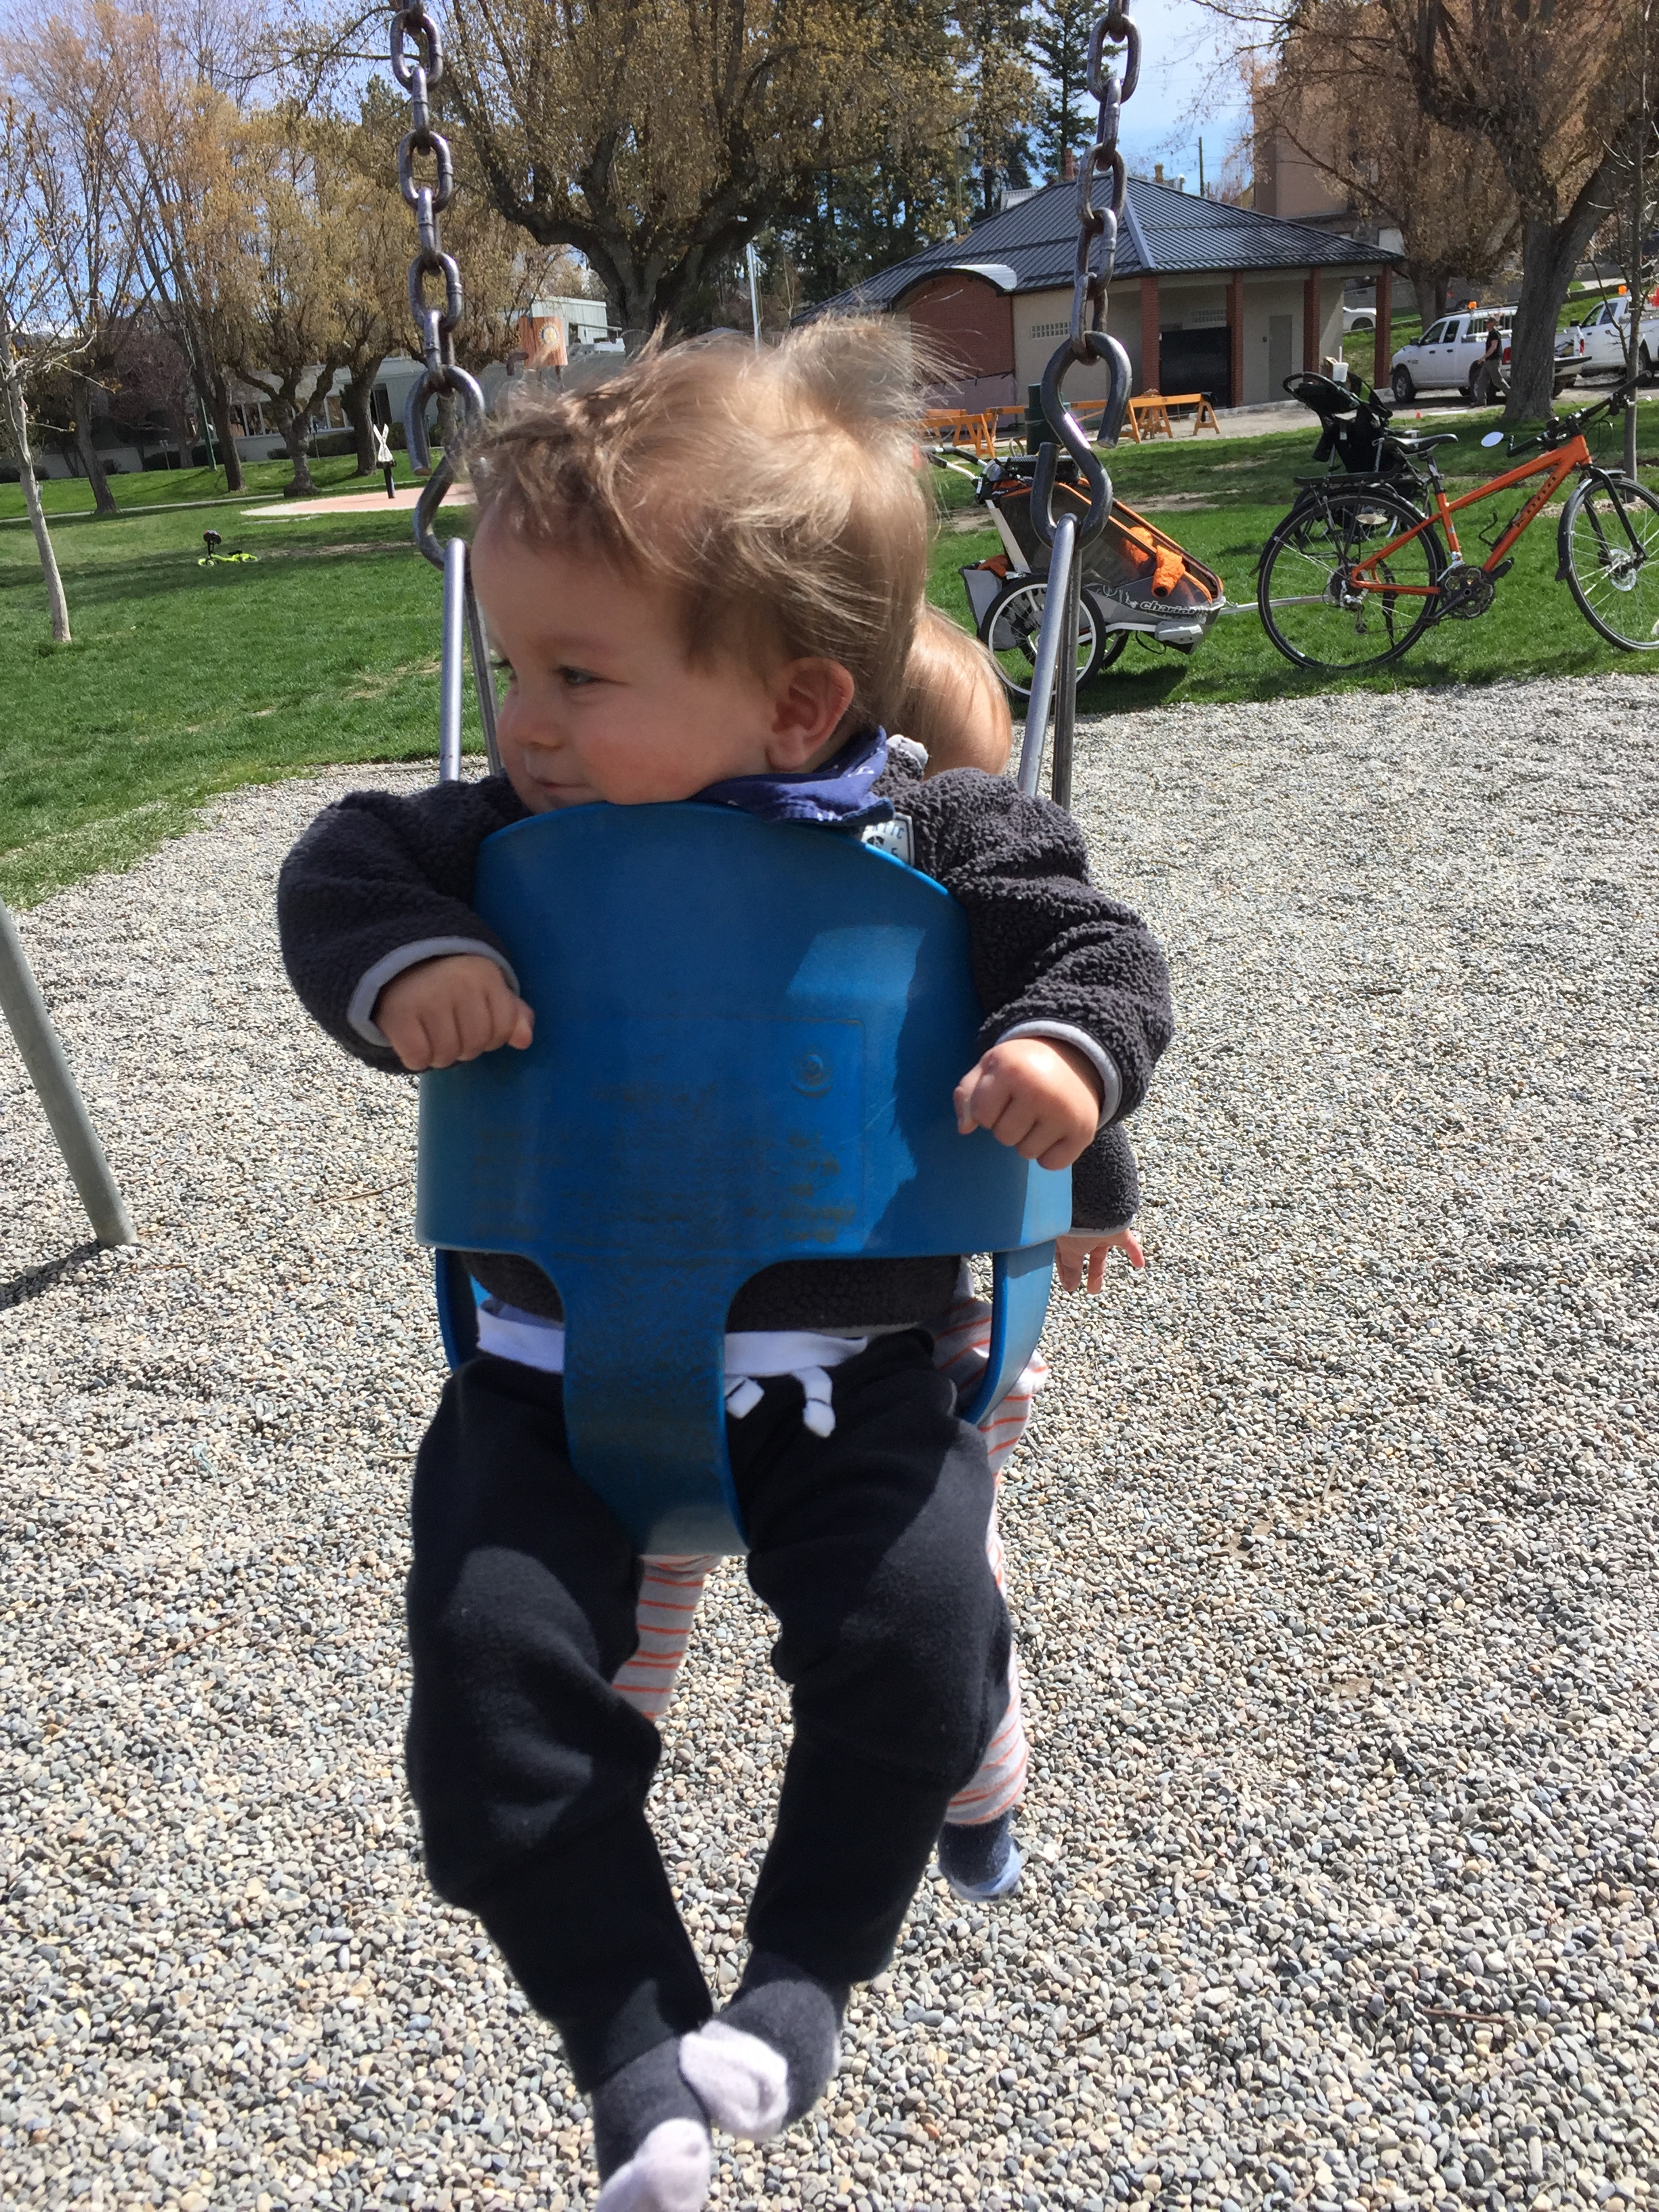 Loving the swings at Rotary Park!